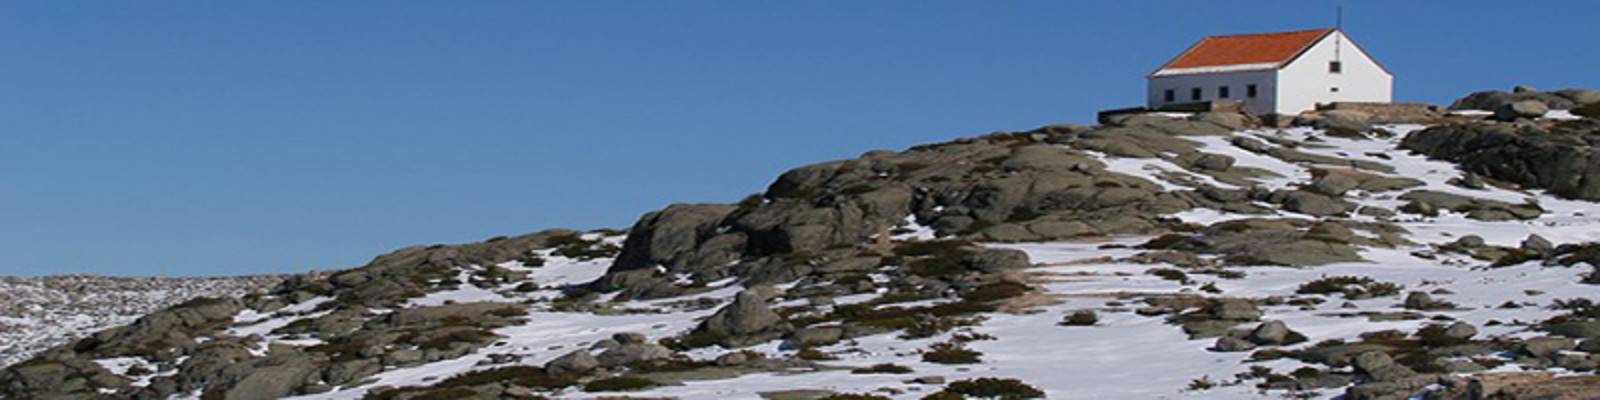 Snow in the Serra da Estrela